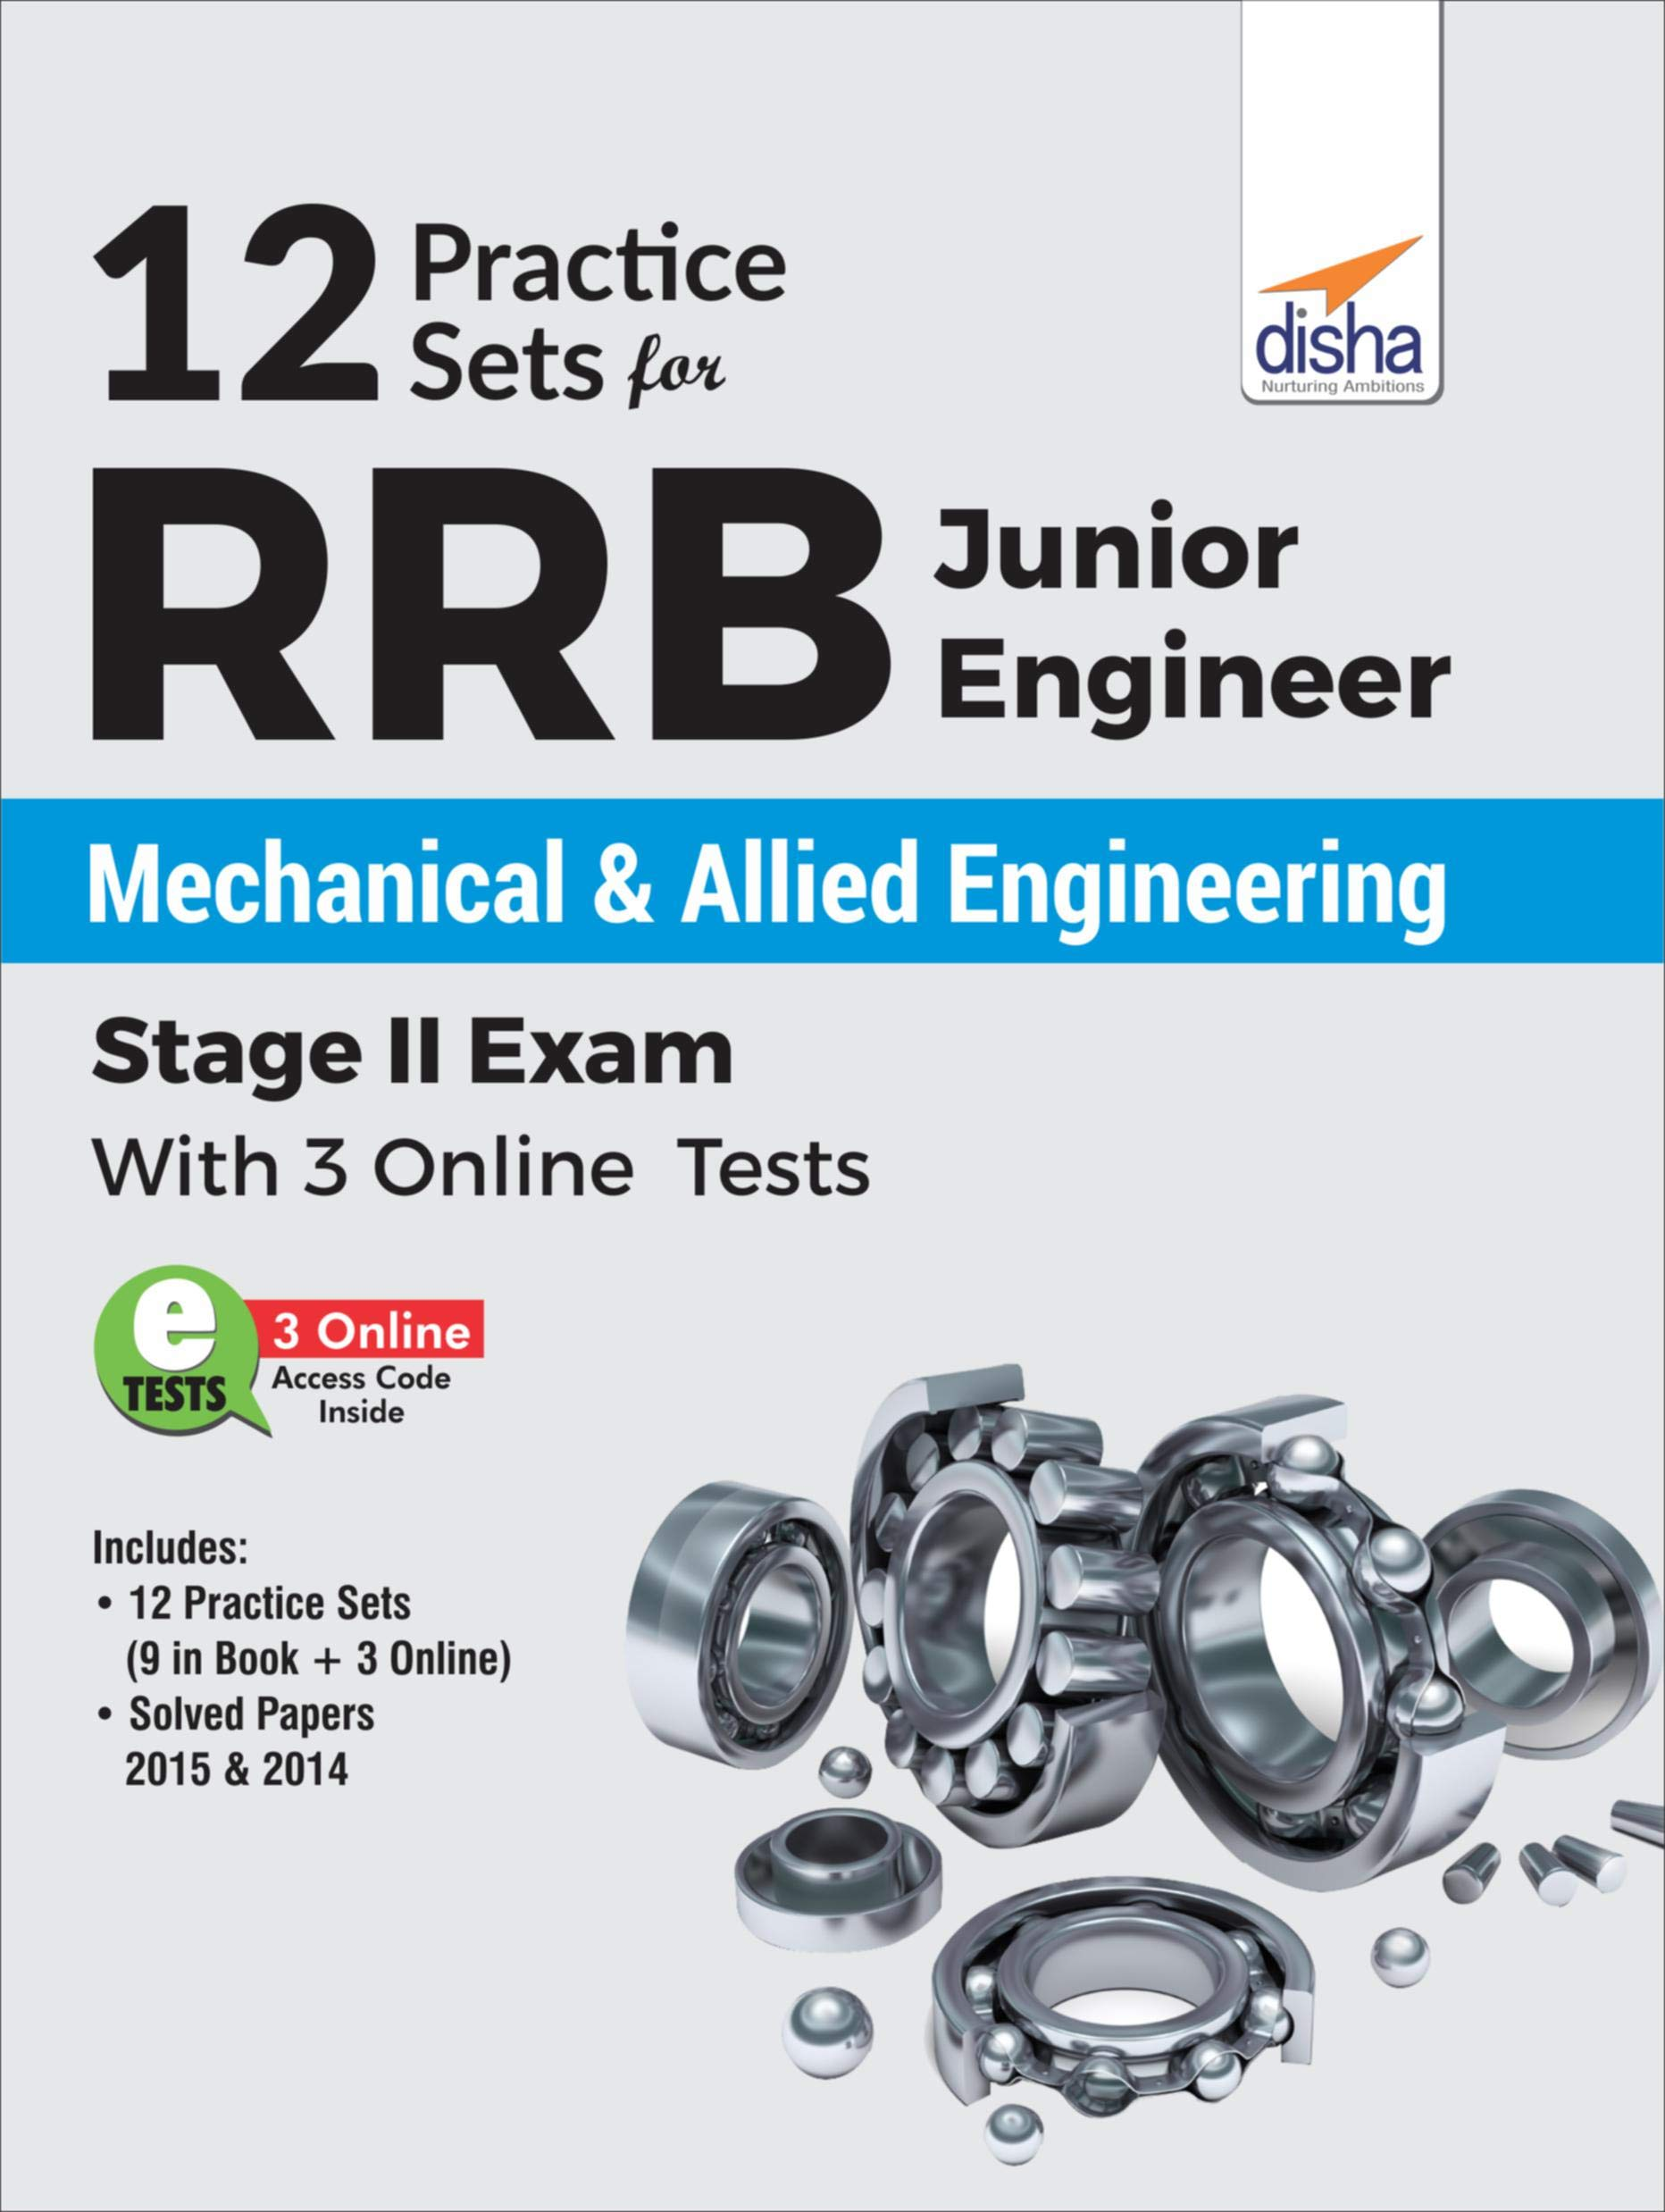 Buy 12 Practice Sets for RRB Junior Engineer Mechanical